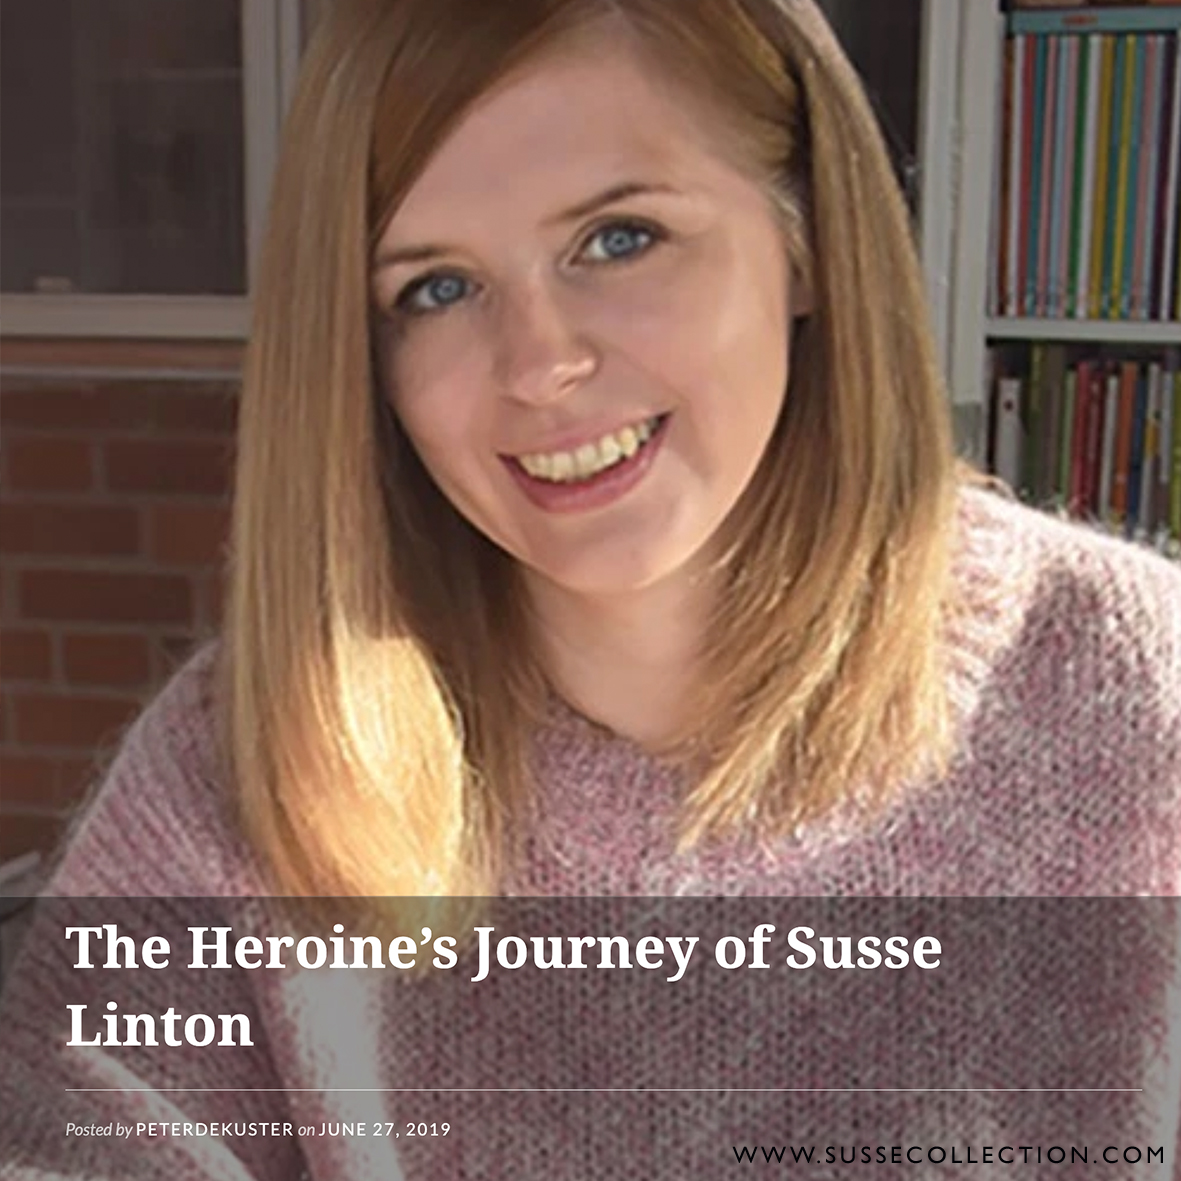 Susse Collection_The Heroine's Journey.jpg